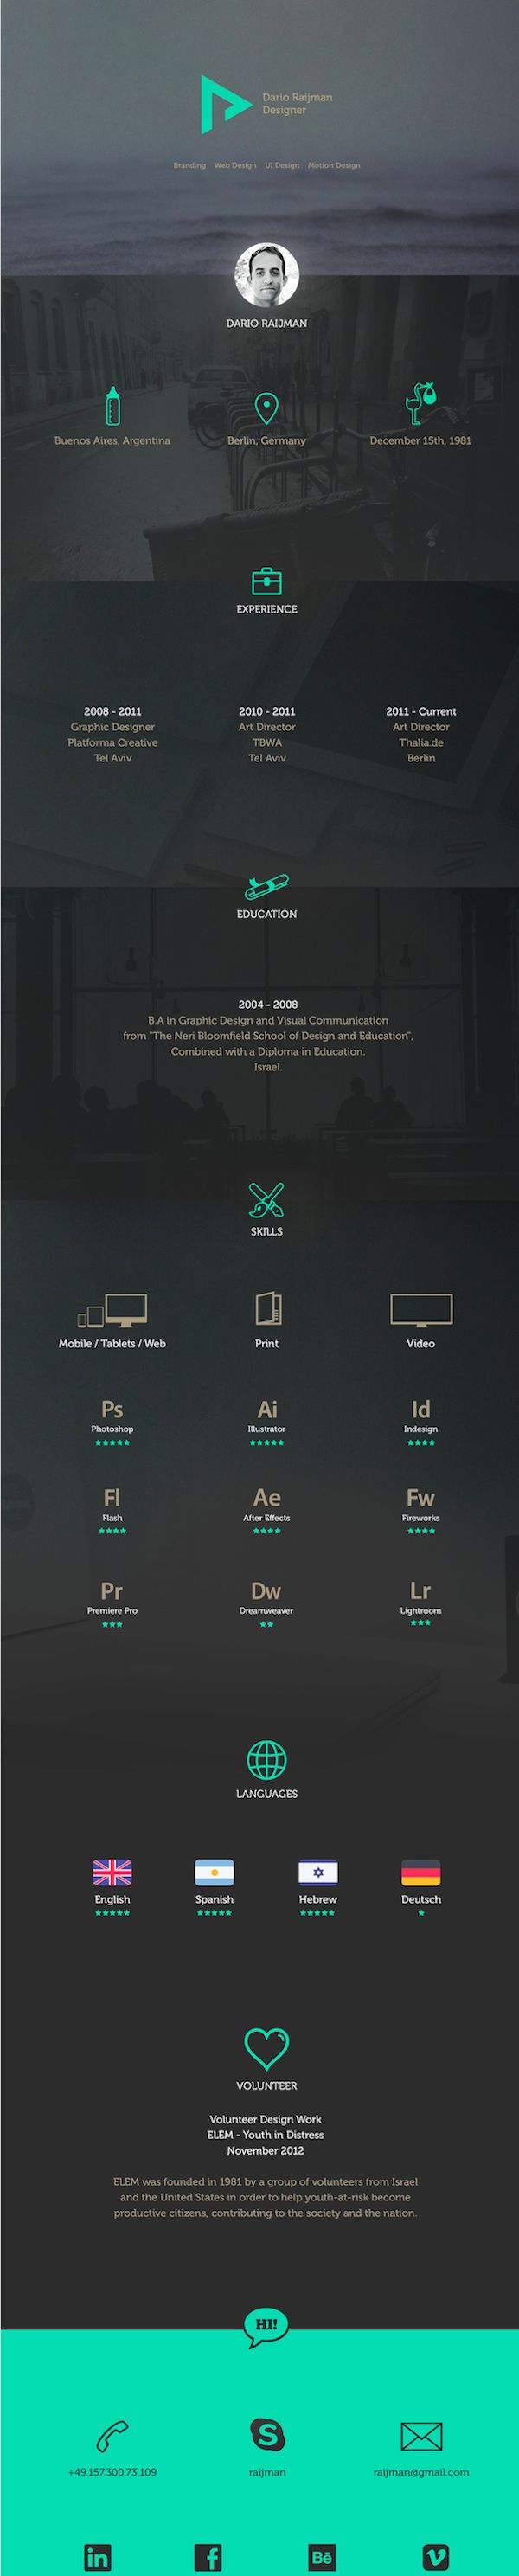 17 images about cv resume infographic resume creative resume designs 2014